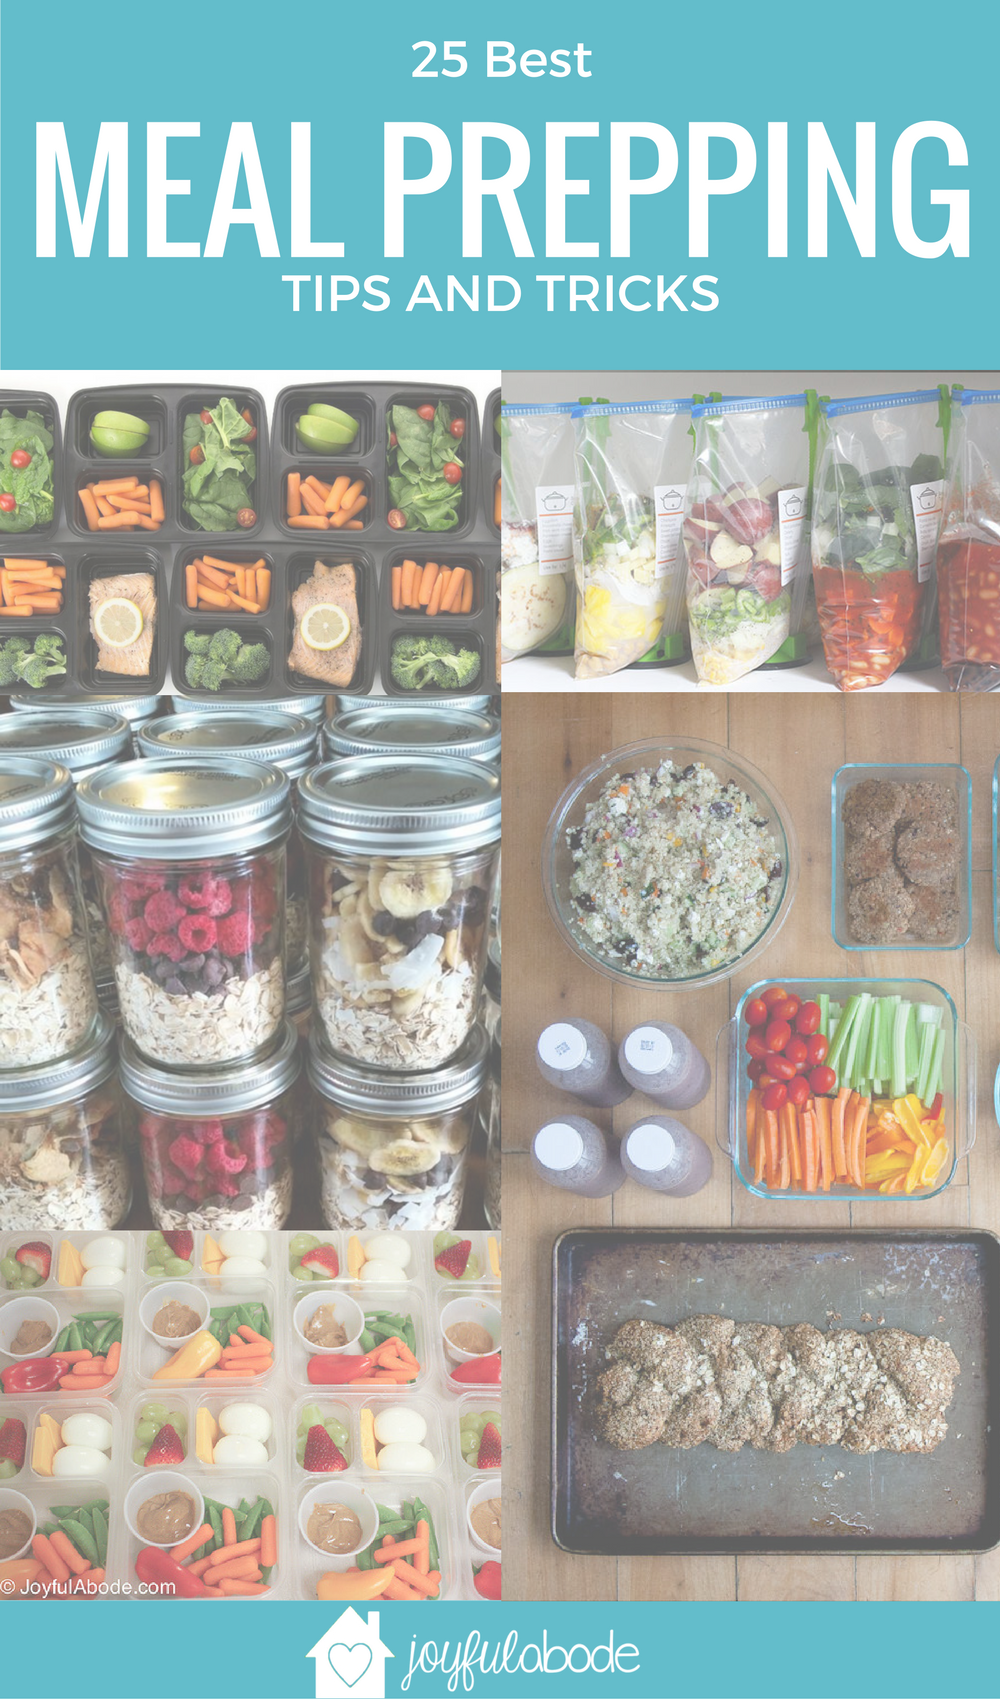 Plan ahead, and you'll plan for success. Here are 25 of the best meal prepping tips on the internet. Learn new tricks for food planning and make-ahead meals!